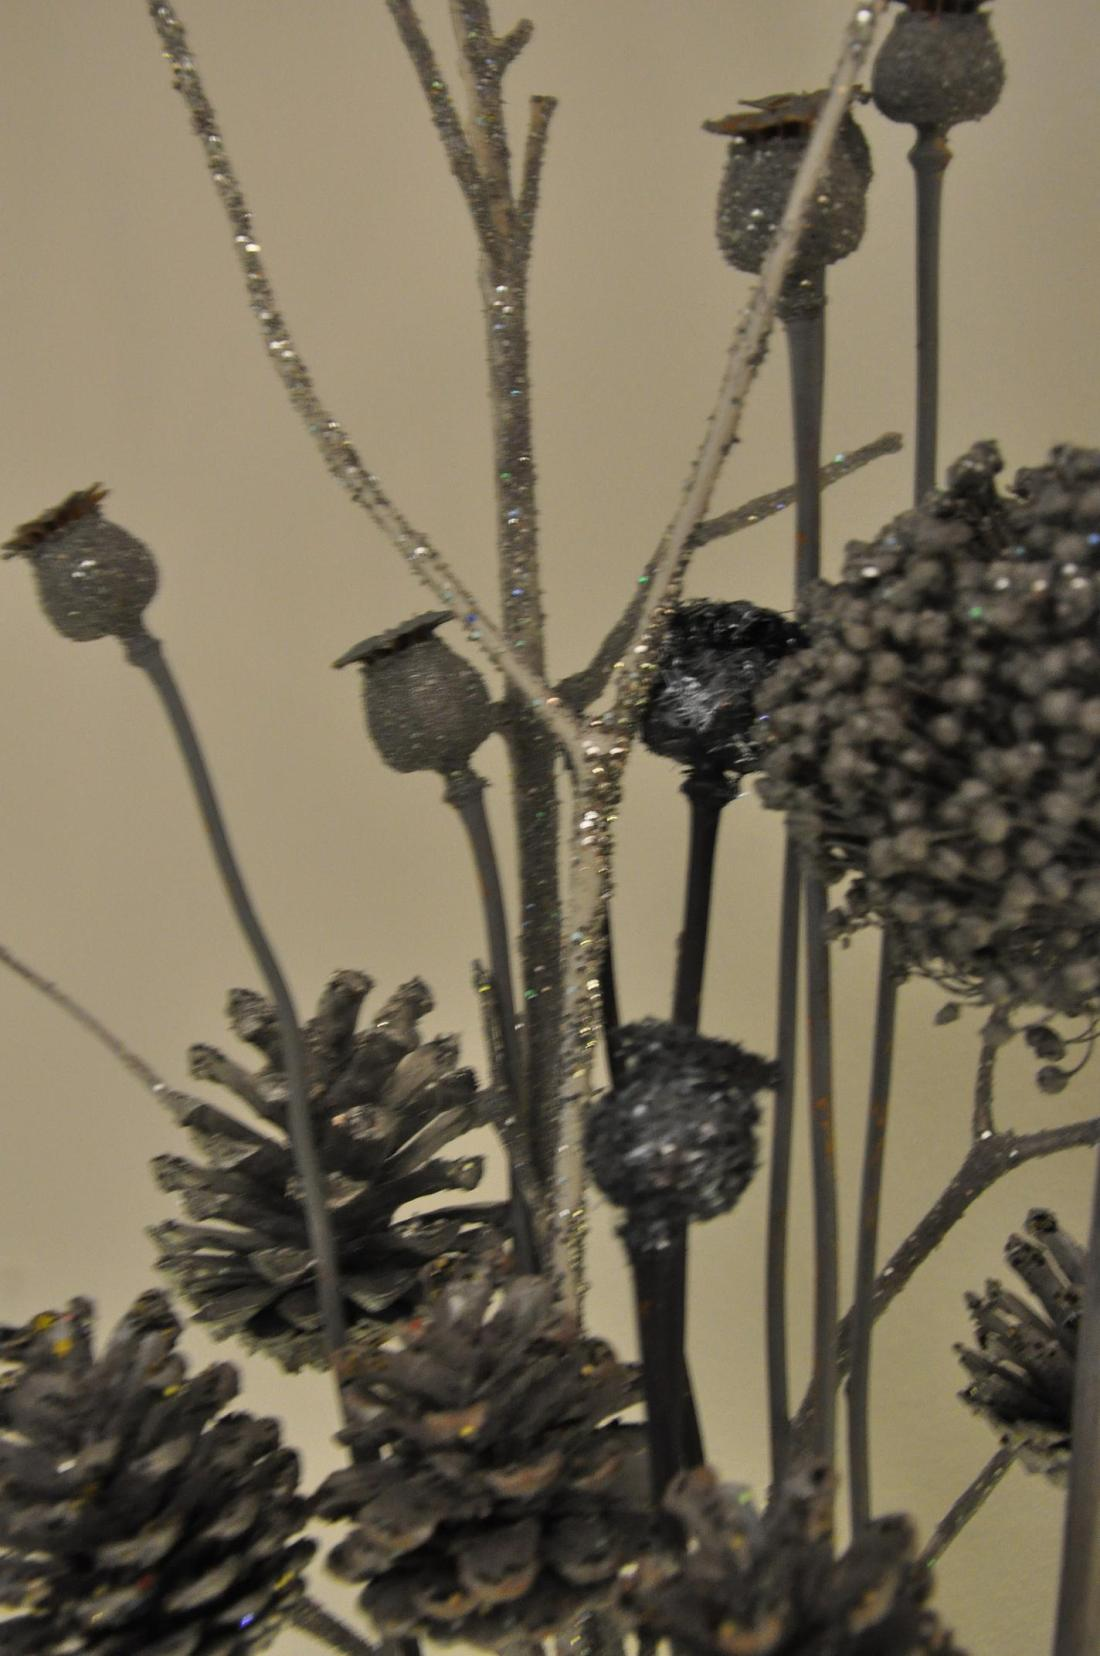 silver sprayed seed heads